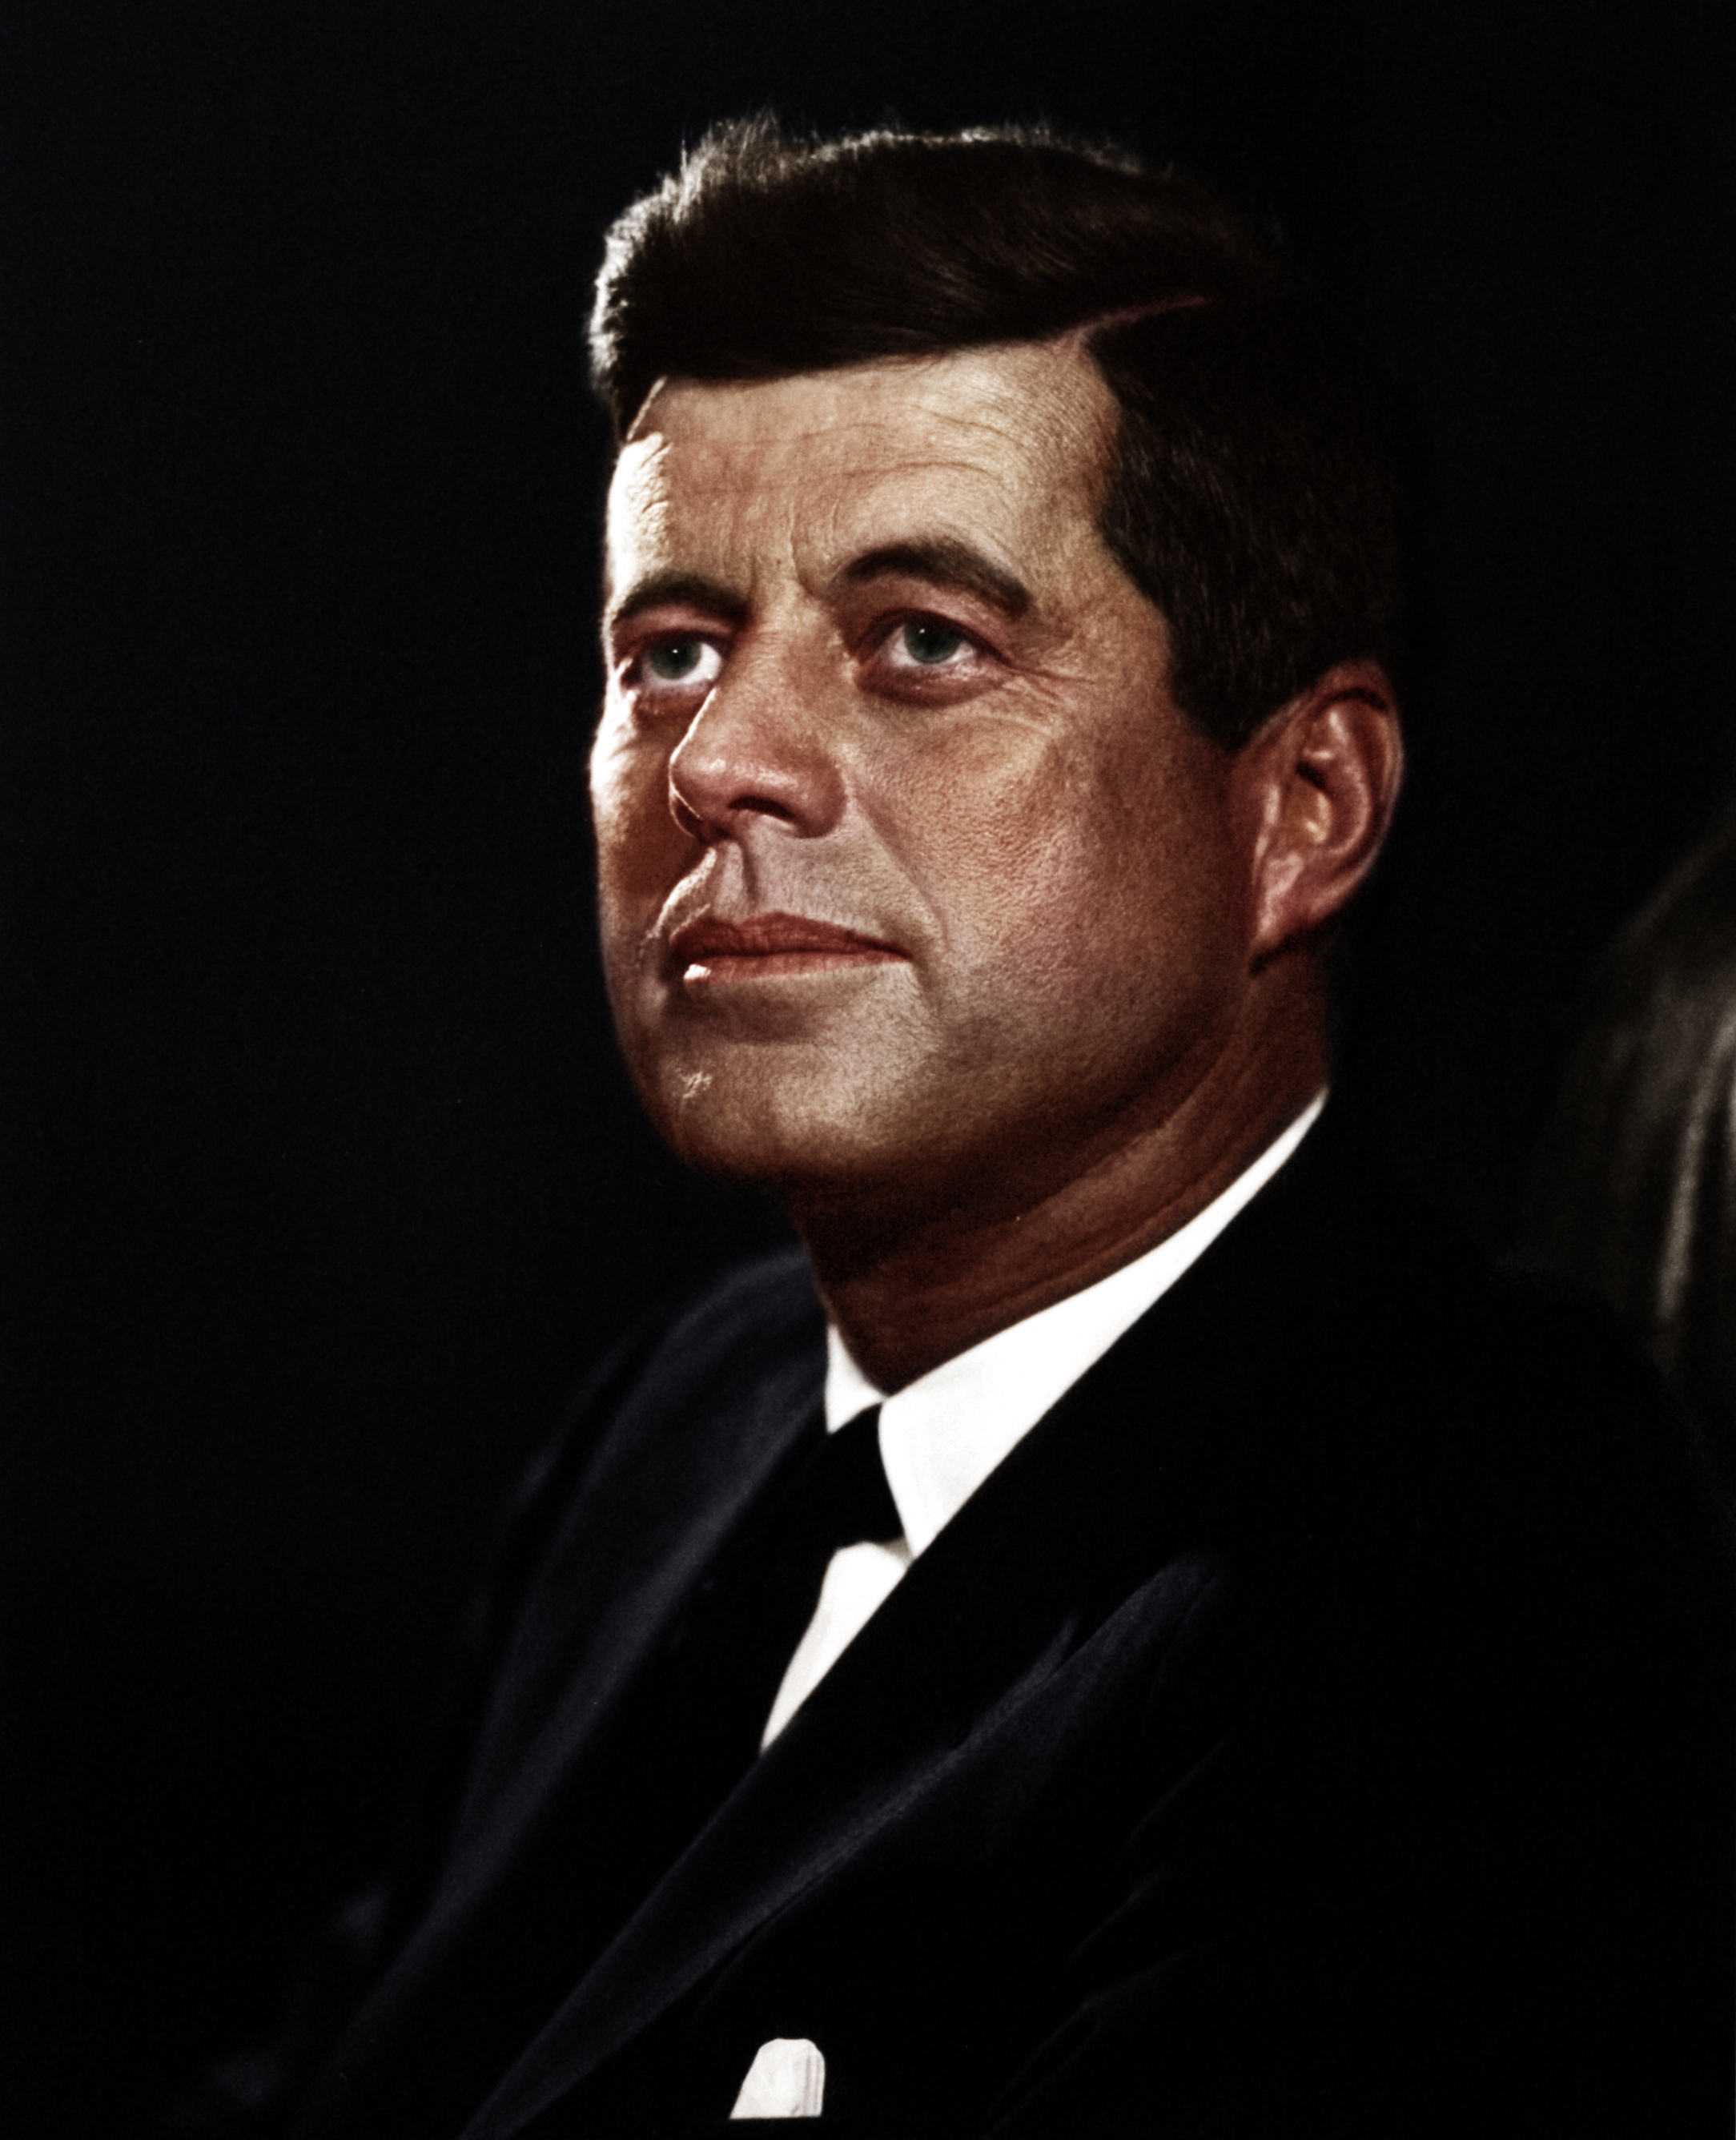 a history of john kennedys presidency Jfk's top 5 political accomplishments by kennedy proved that he could, and became the first and only catholic president in american history 2.